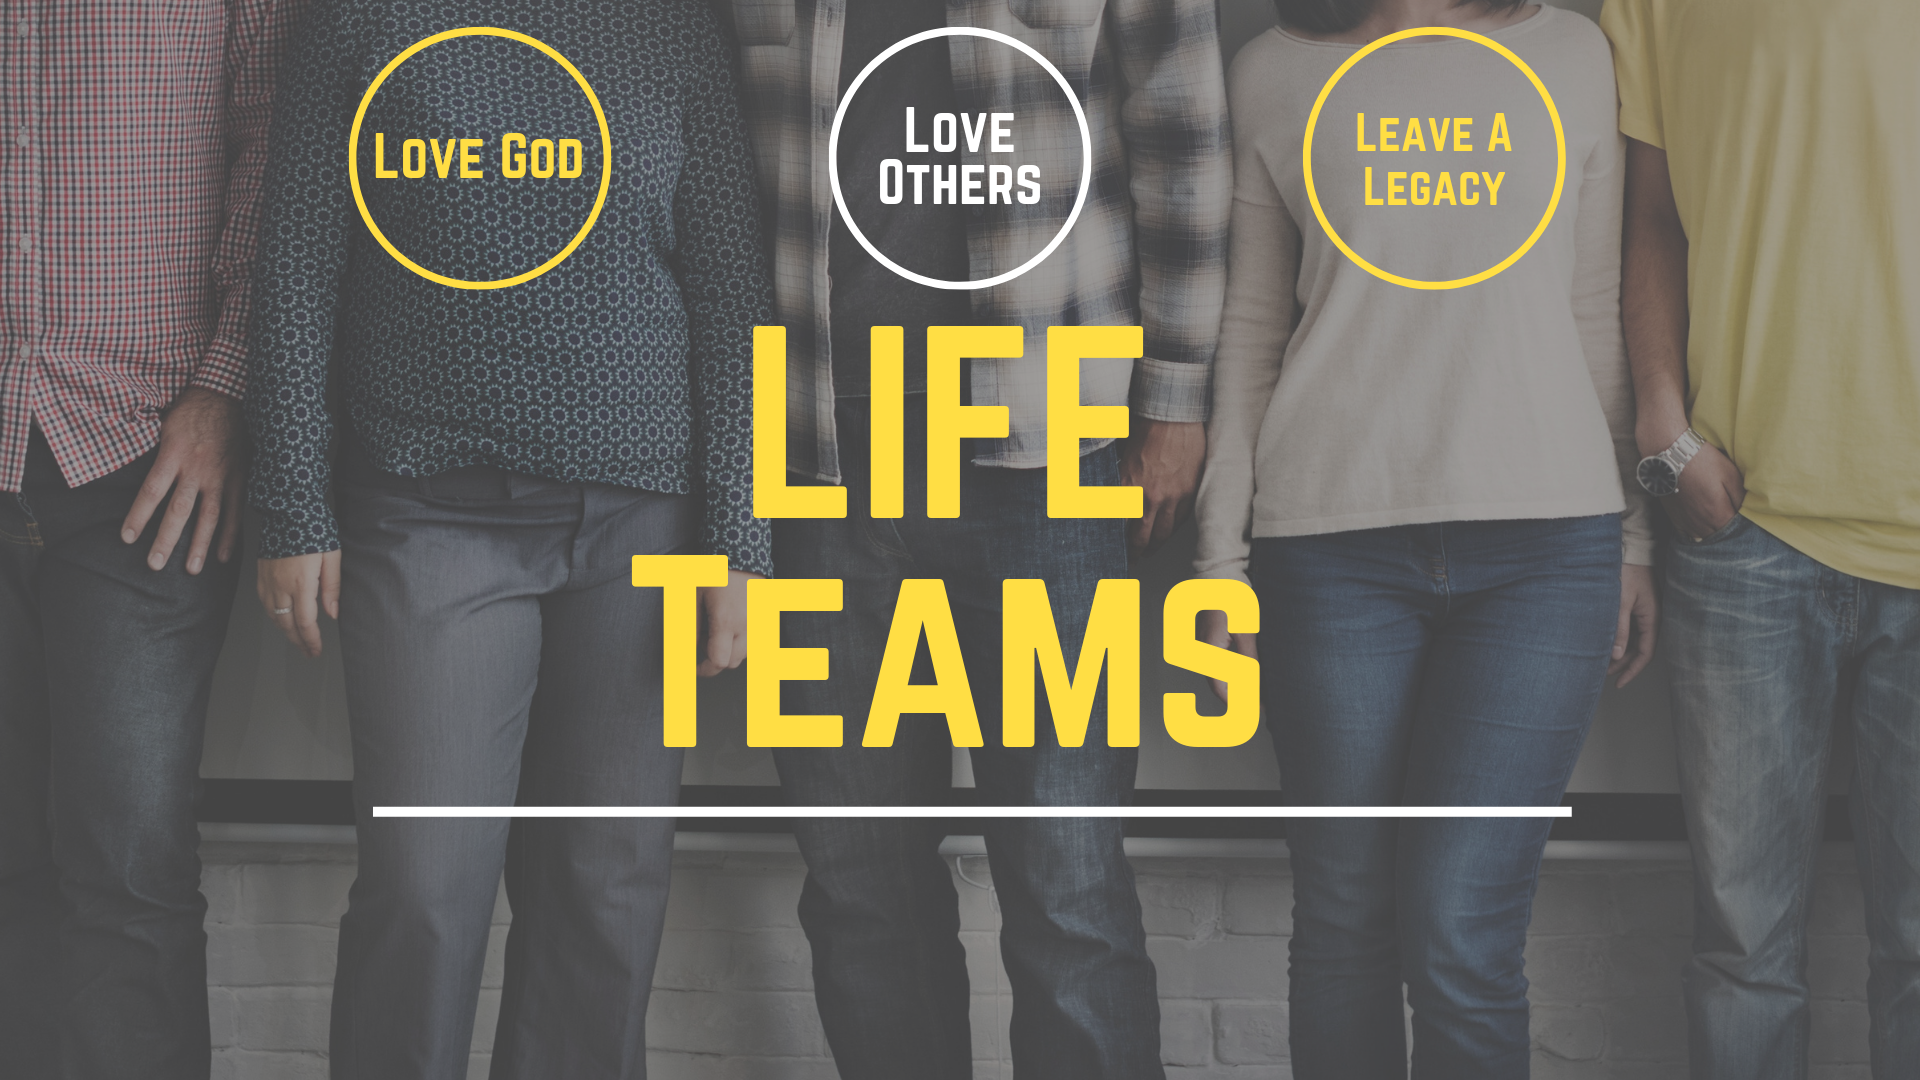 Life Teams - No matter where you come from or the stage of life your in, there's a group for you. Join a Life Group and experience real relationships and real community. Watch as your faith grows and you see God in a whole new way!